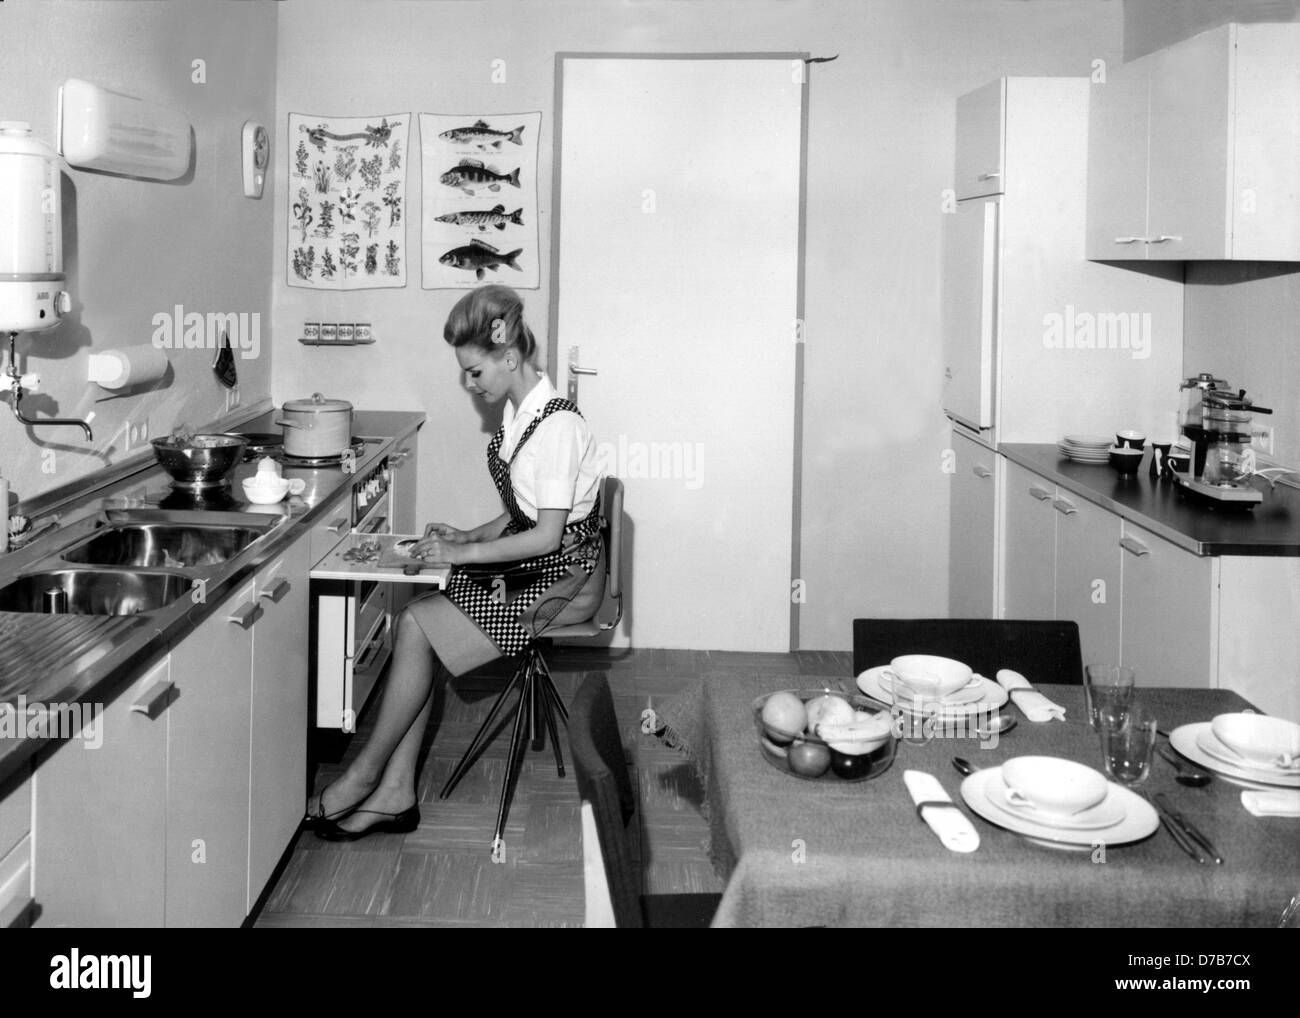 A housewife can prepare her vegetables at an extendible worktop while sitting. This ergonomic kitchen was ultra modern in the 1960s. Stock Photo